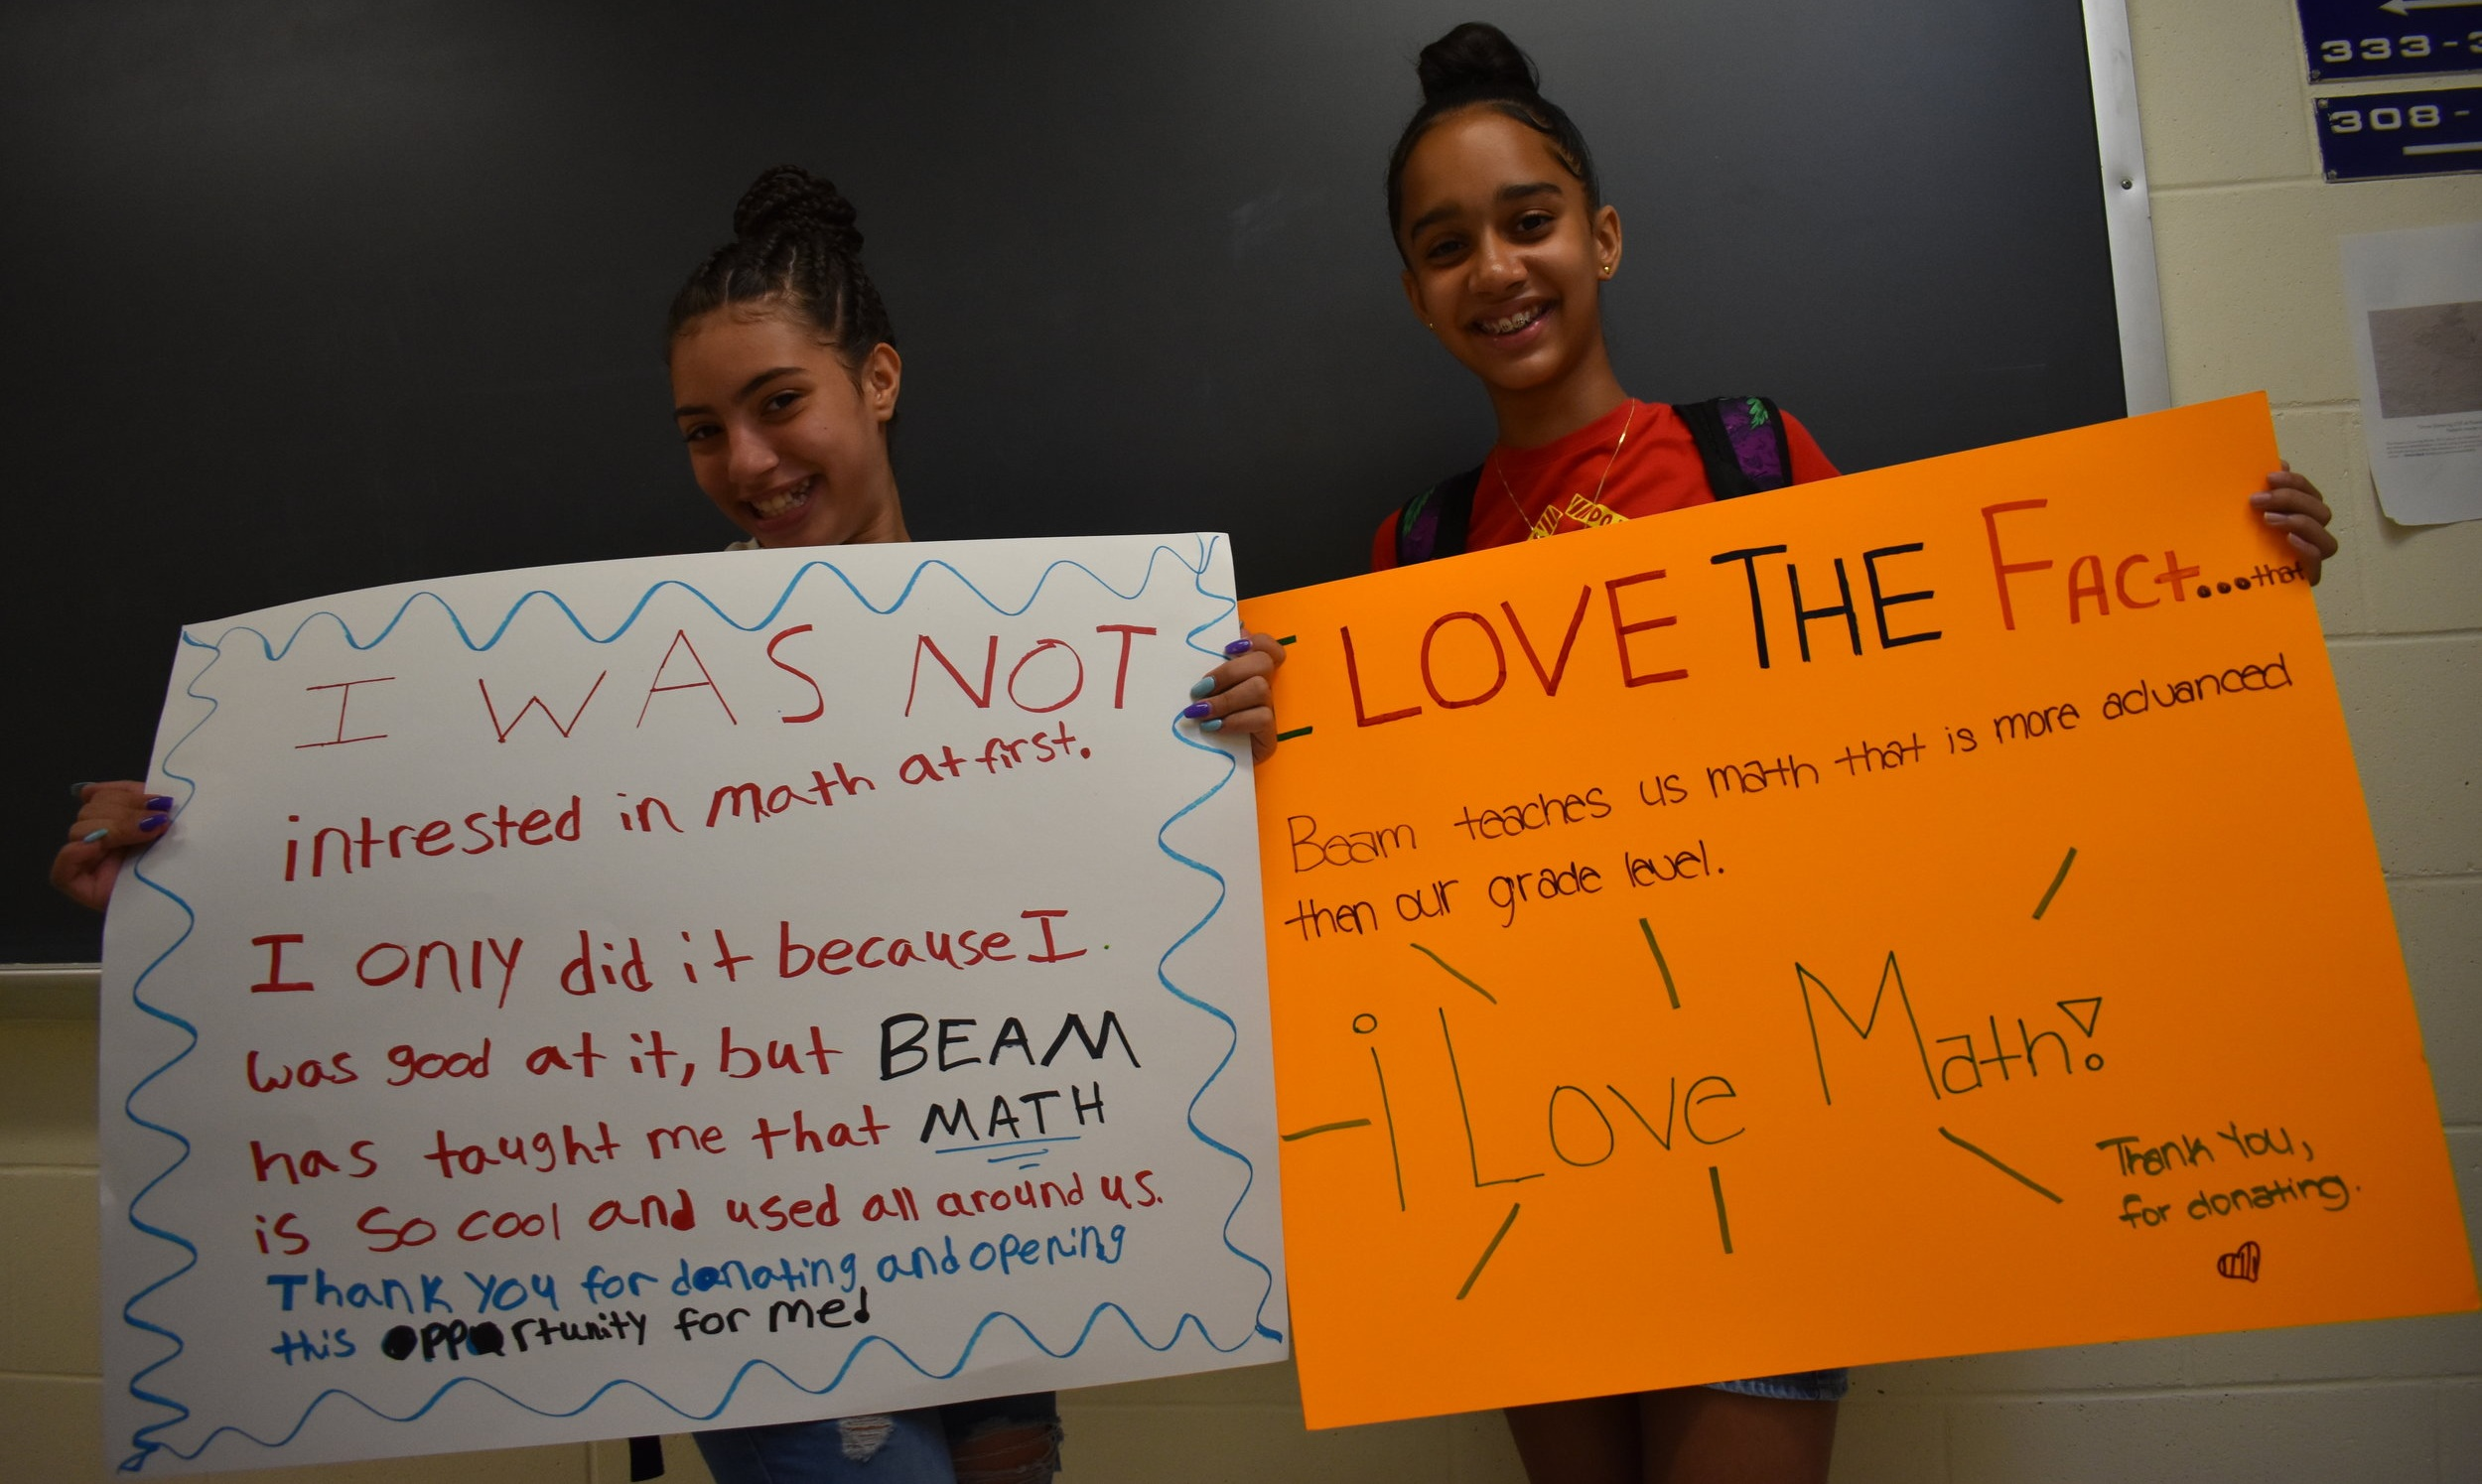 Kaitlyn, 6th grade: I was not interested in math at first. I only did it because I was good at it, but BEAM has taught me that  math  is so cool and used all around us. Thank you for donating and opening this opportunity for me.  Liz, 6th grade: I love the fact… that BEAM teaches us math that is more advanced than our grade level.  l love math!  Thank you for donating.